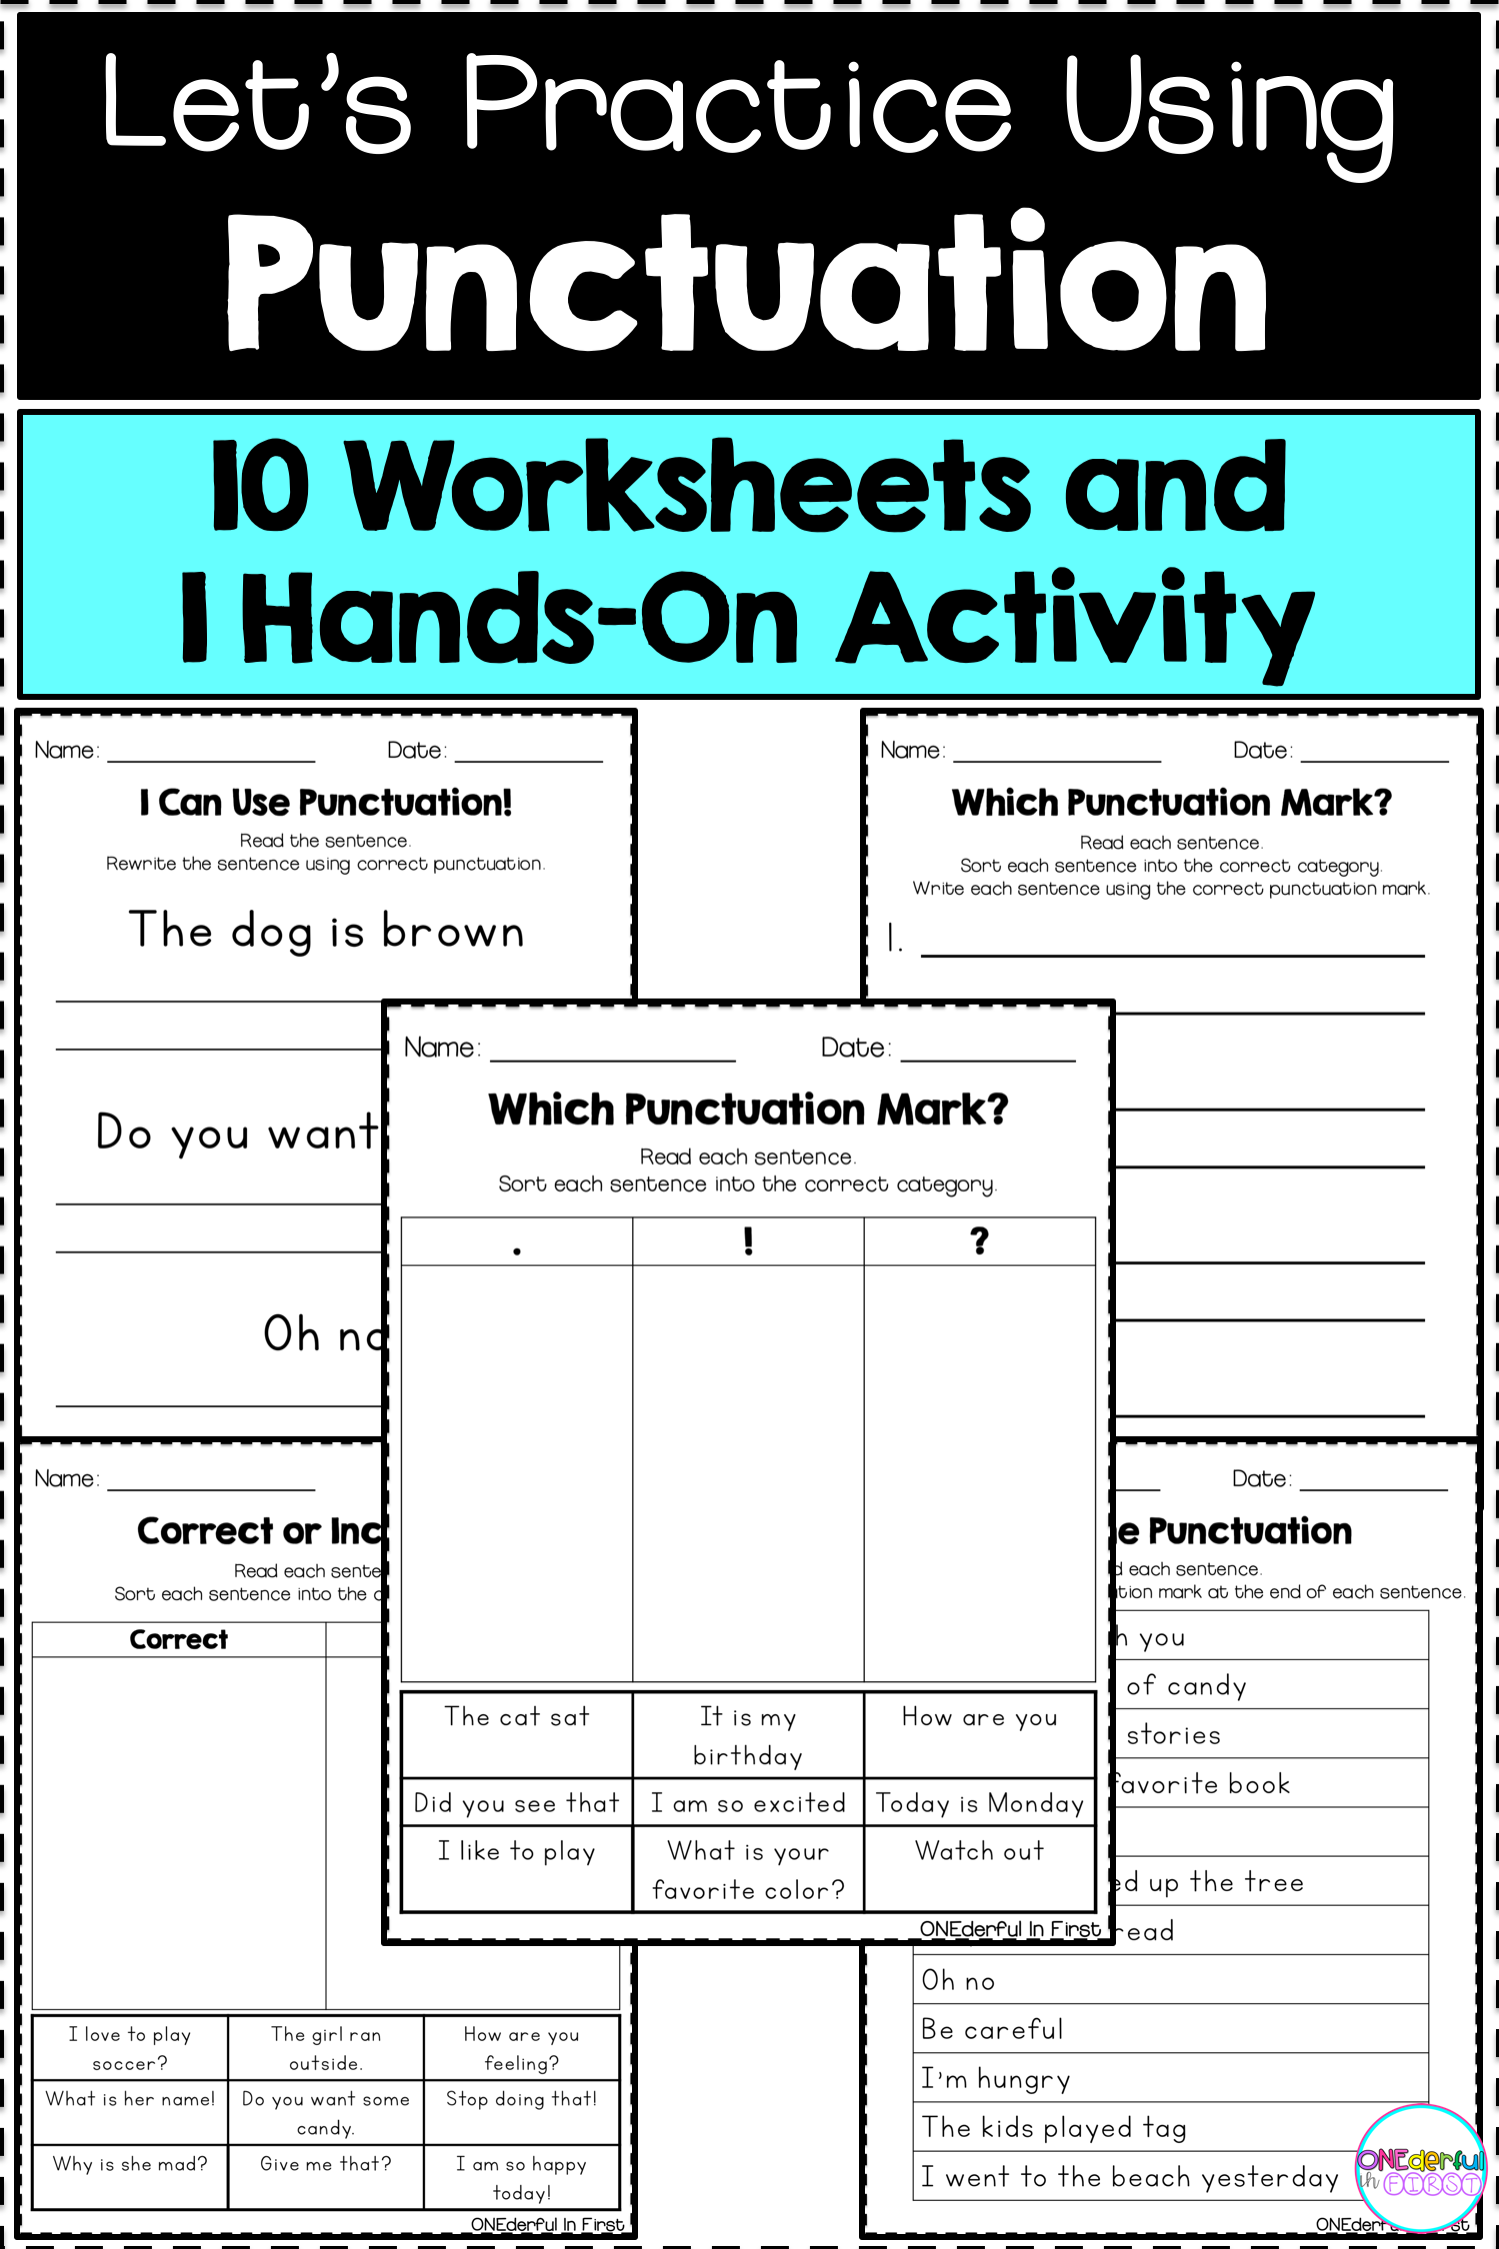 hight resolution of Punctuation - Worksheets and Hands-On Activity   Punctuation worksheets